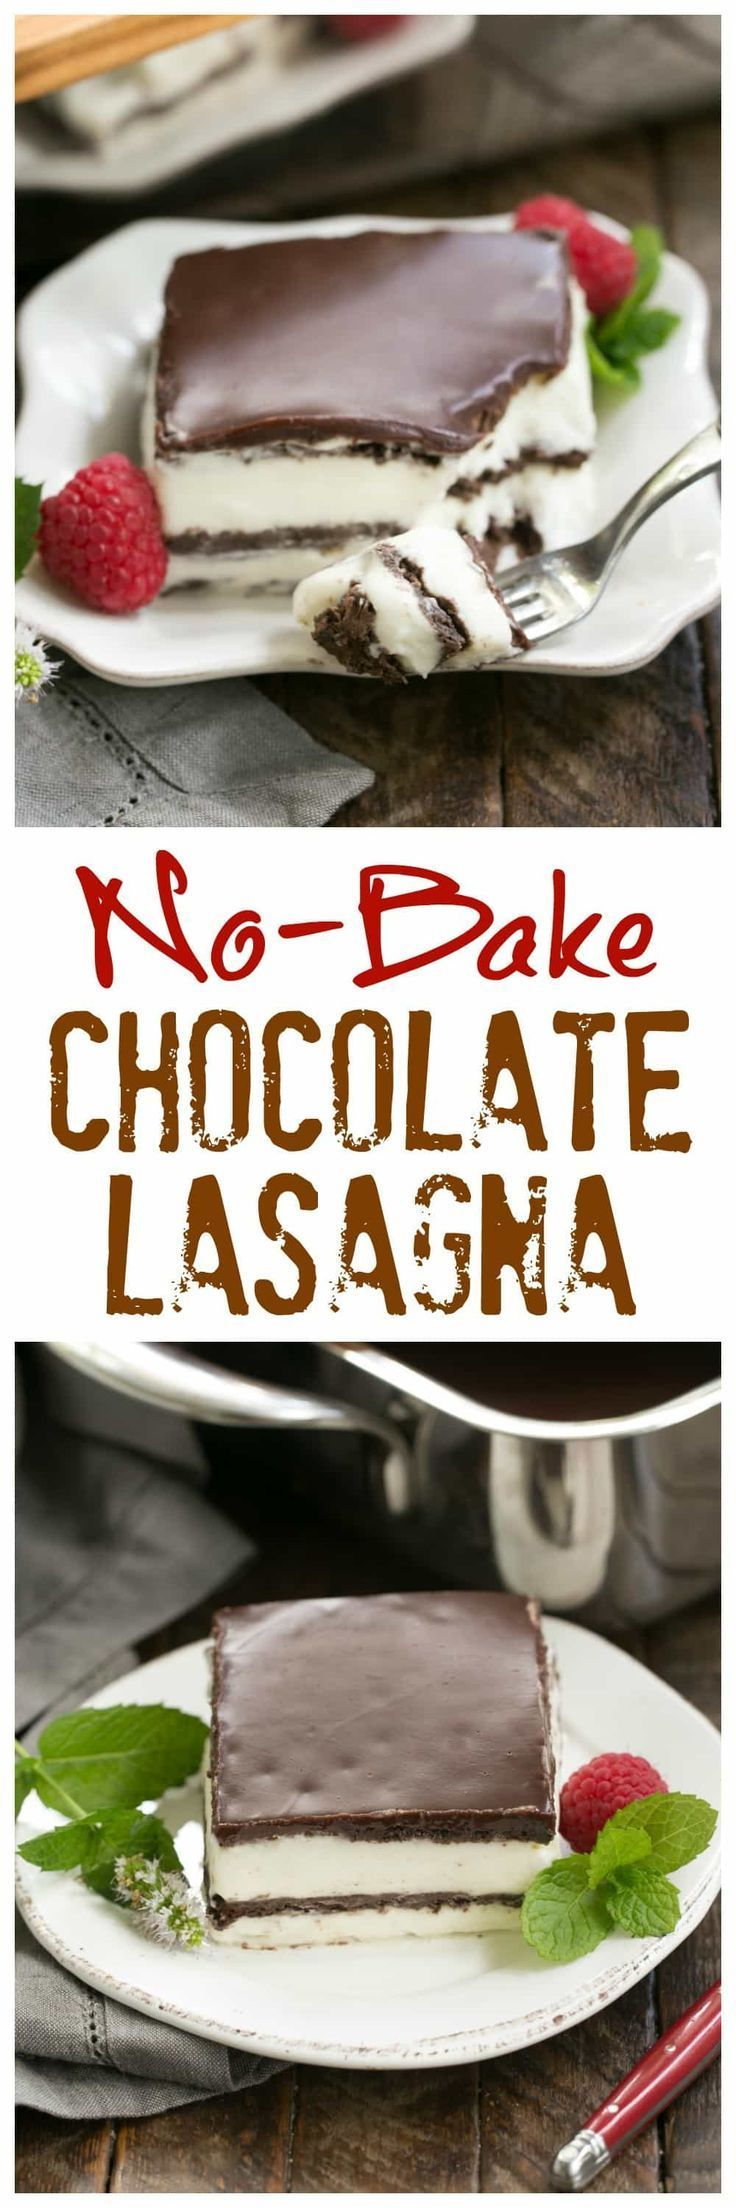 No Bake Chocolate Lasagna | A decadent layered dessert with chocolate graham crackers, creamy custard, chocolate ganache and no Cool Whip or oven needed! #desserts #nobake